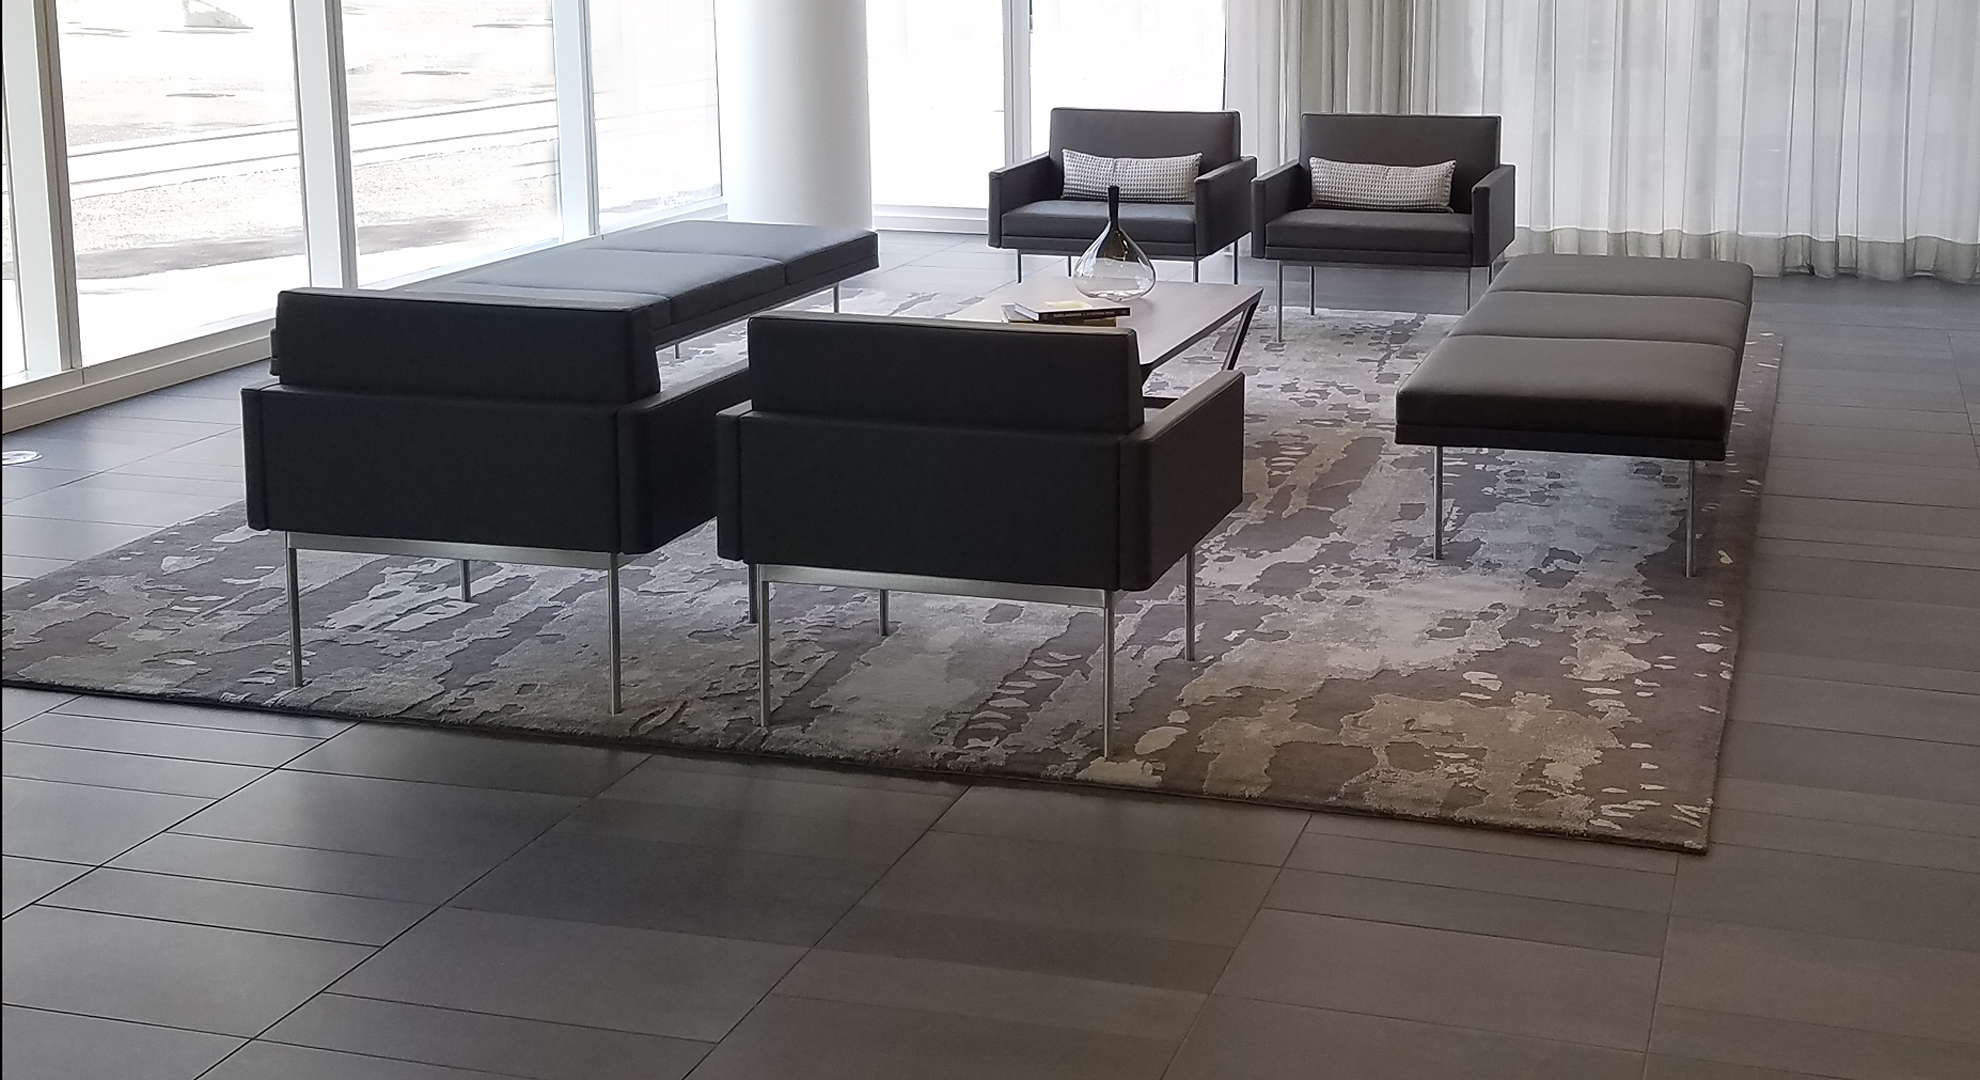 Modern, contemporary home with a custom distressed rug in neutral grays.